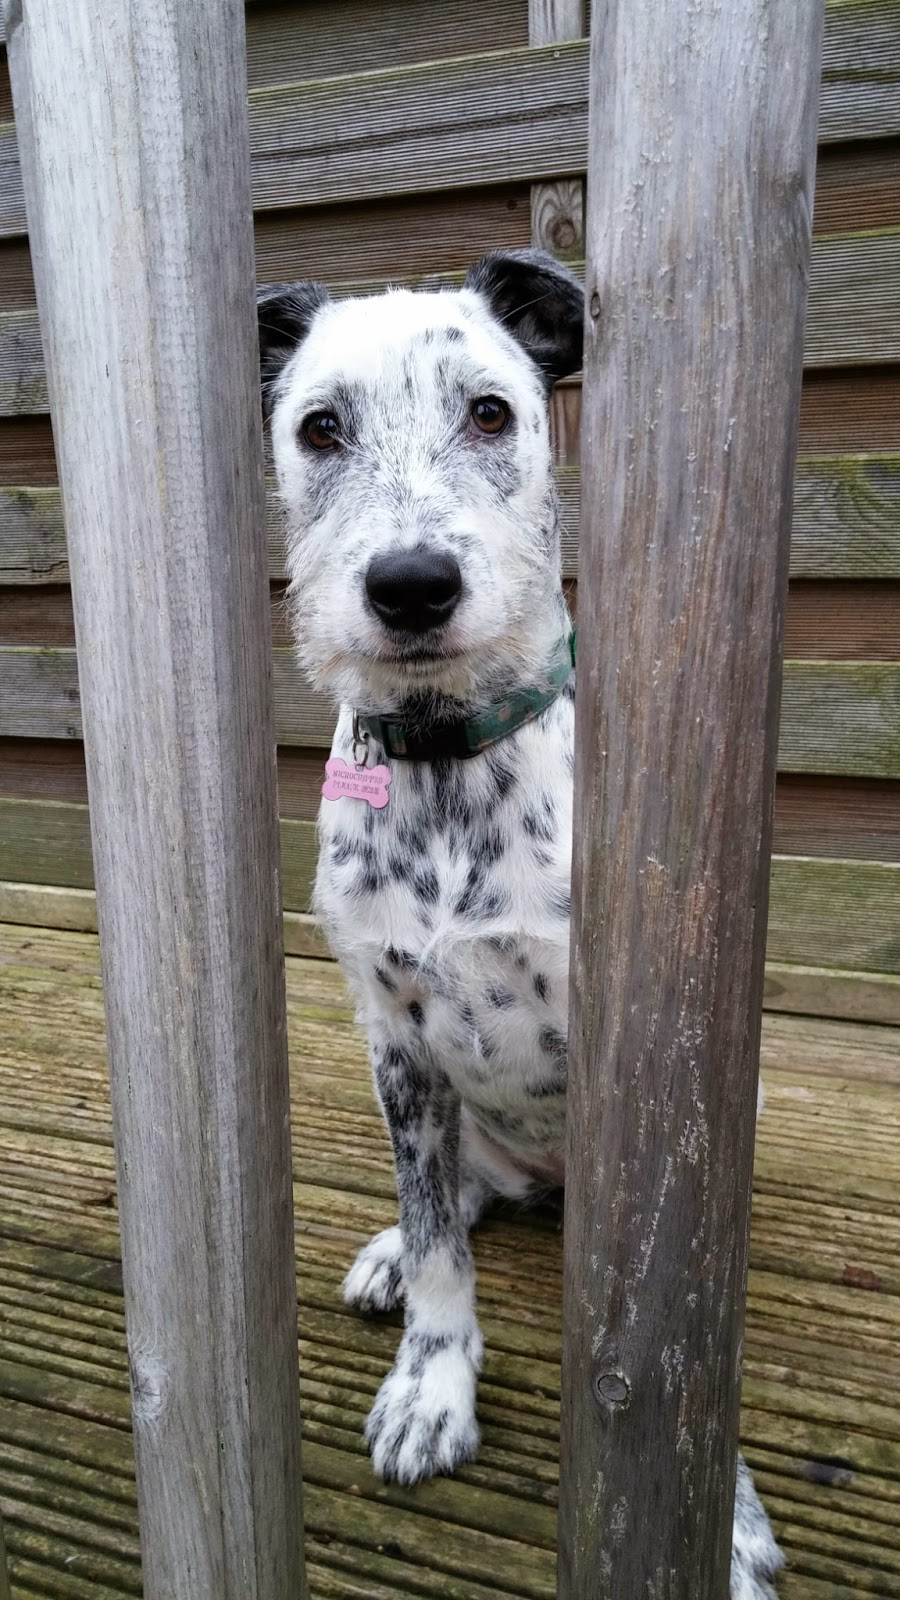 spotty dog on watch